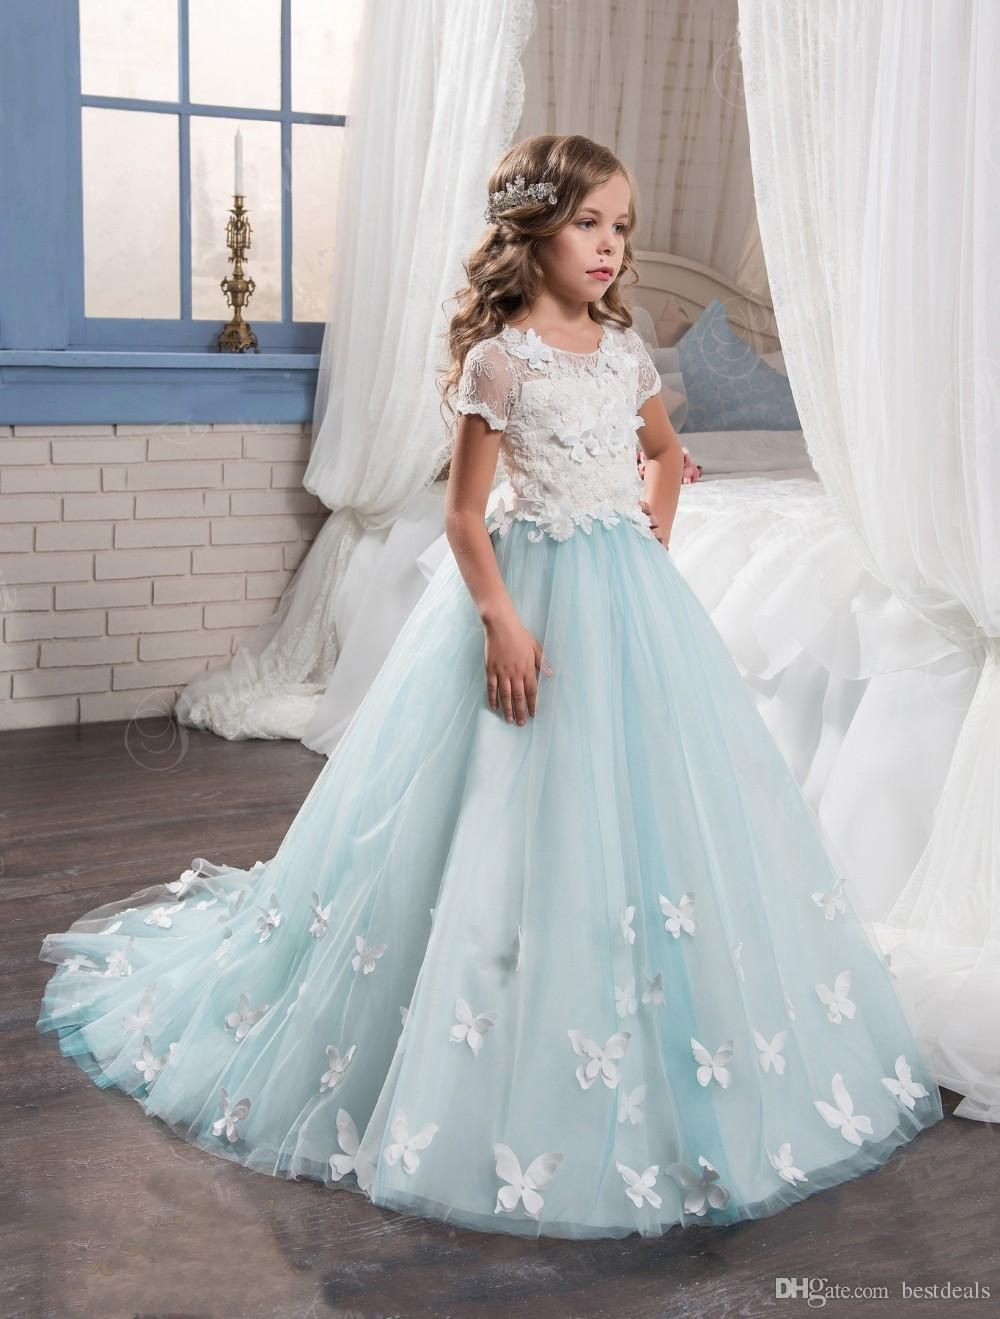 Cool Wedding Ring Bearer Outfits Pictures Inspiration - Wedding ...